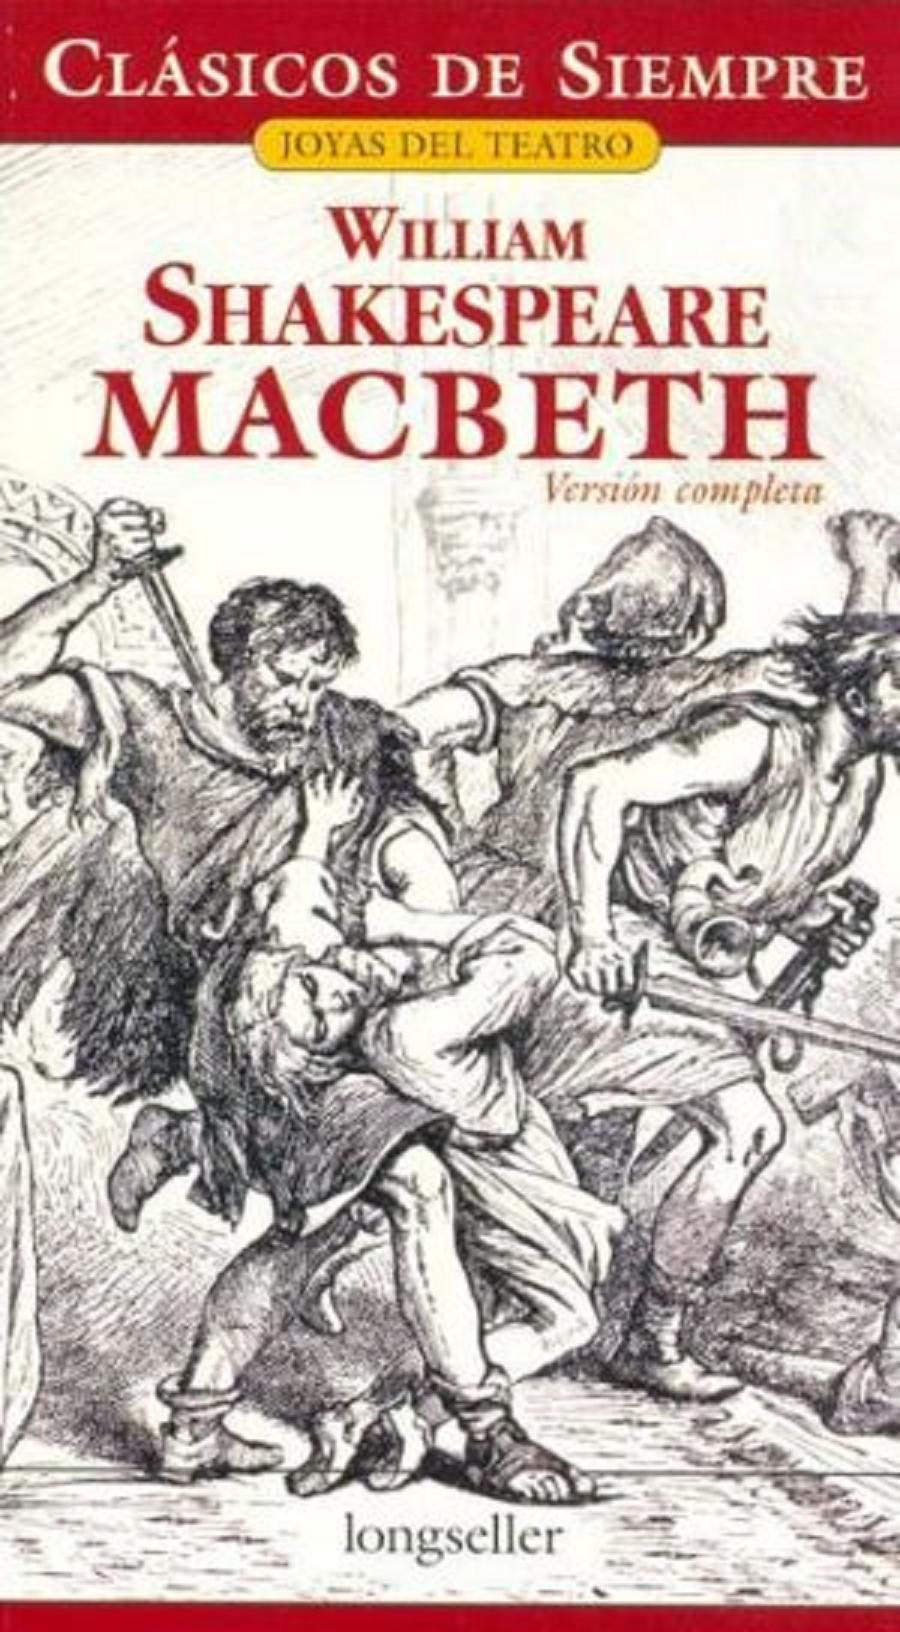 Breve repaso de Macbeth, la excepcional obra de William